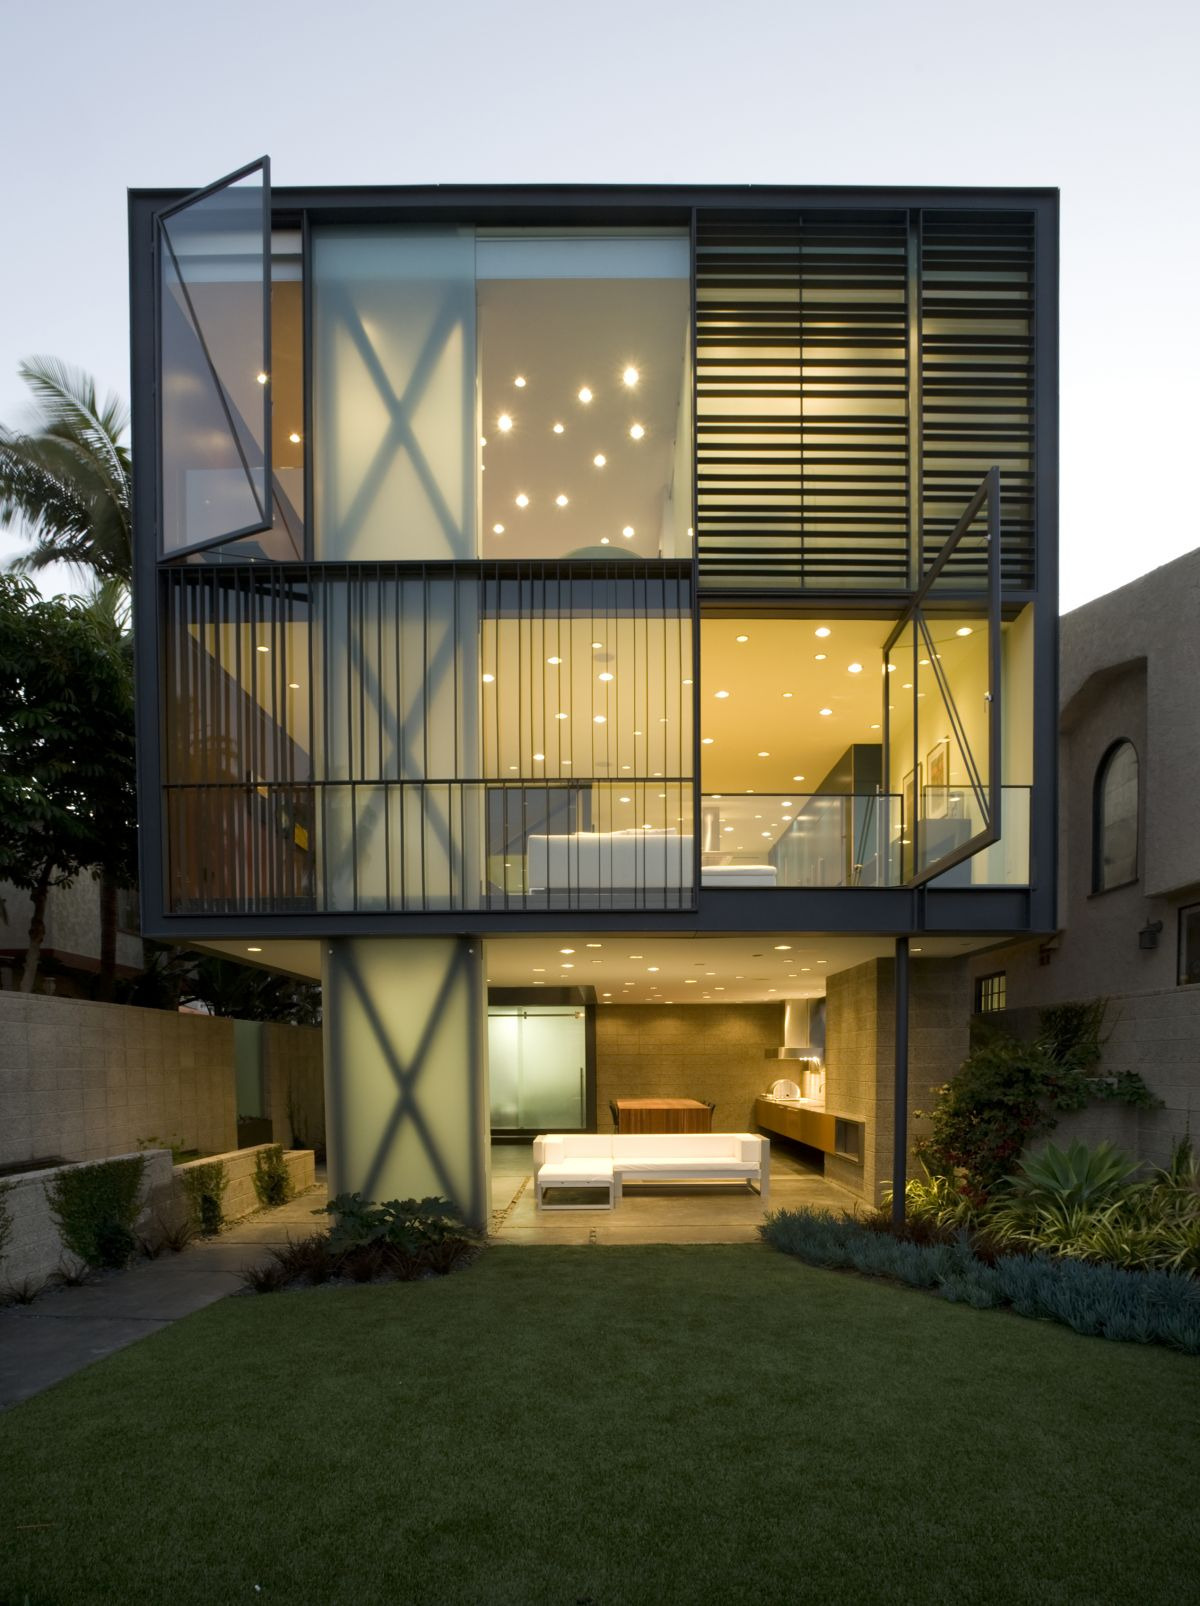 Modern House Designs 2015 Awesome Exteriors Minimalist Flooring 2015 Home Decor Hohodd and